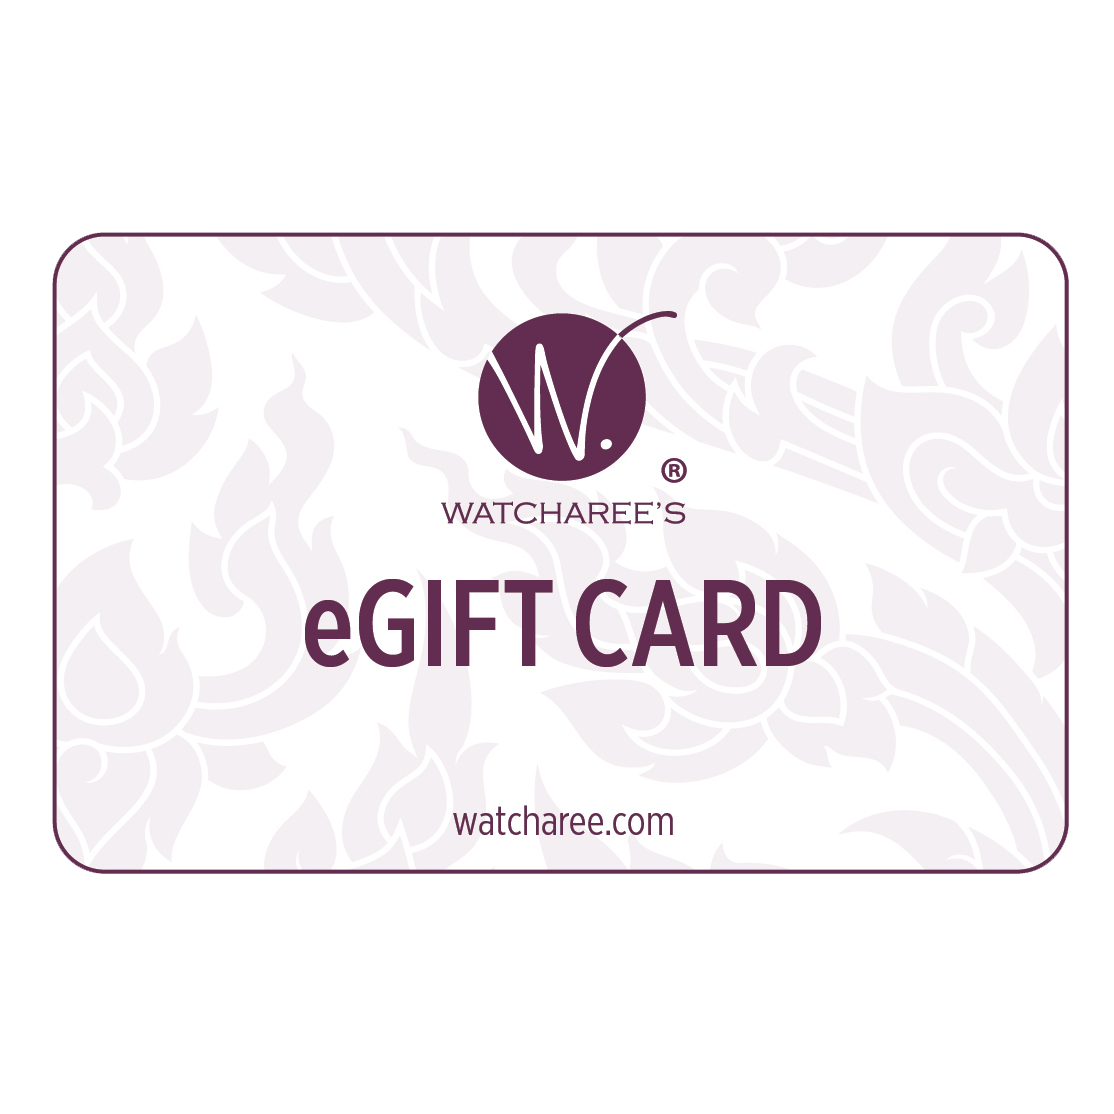 WATCHAREE'S Thai sauces - eGift card